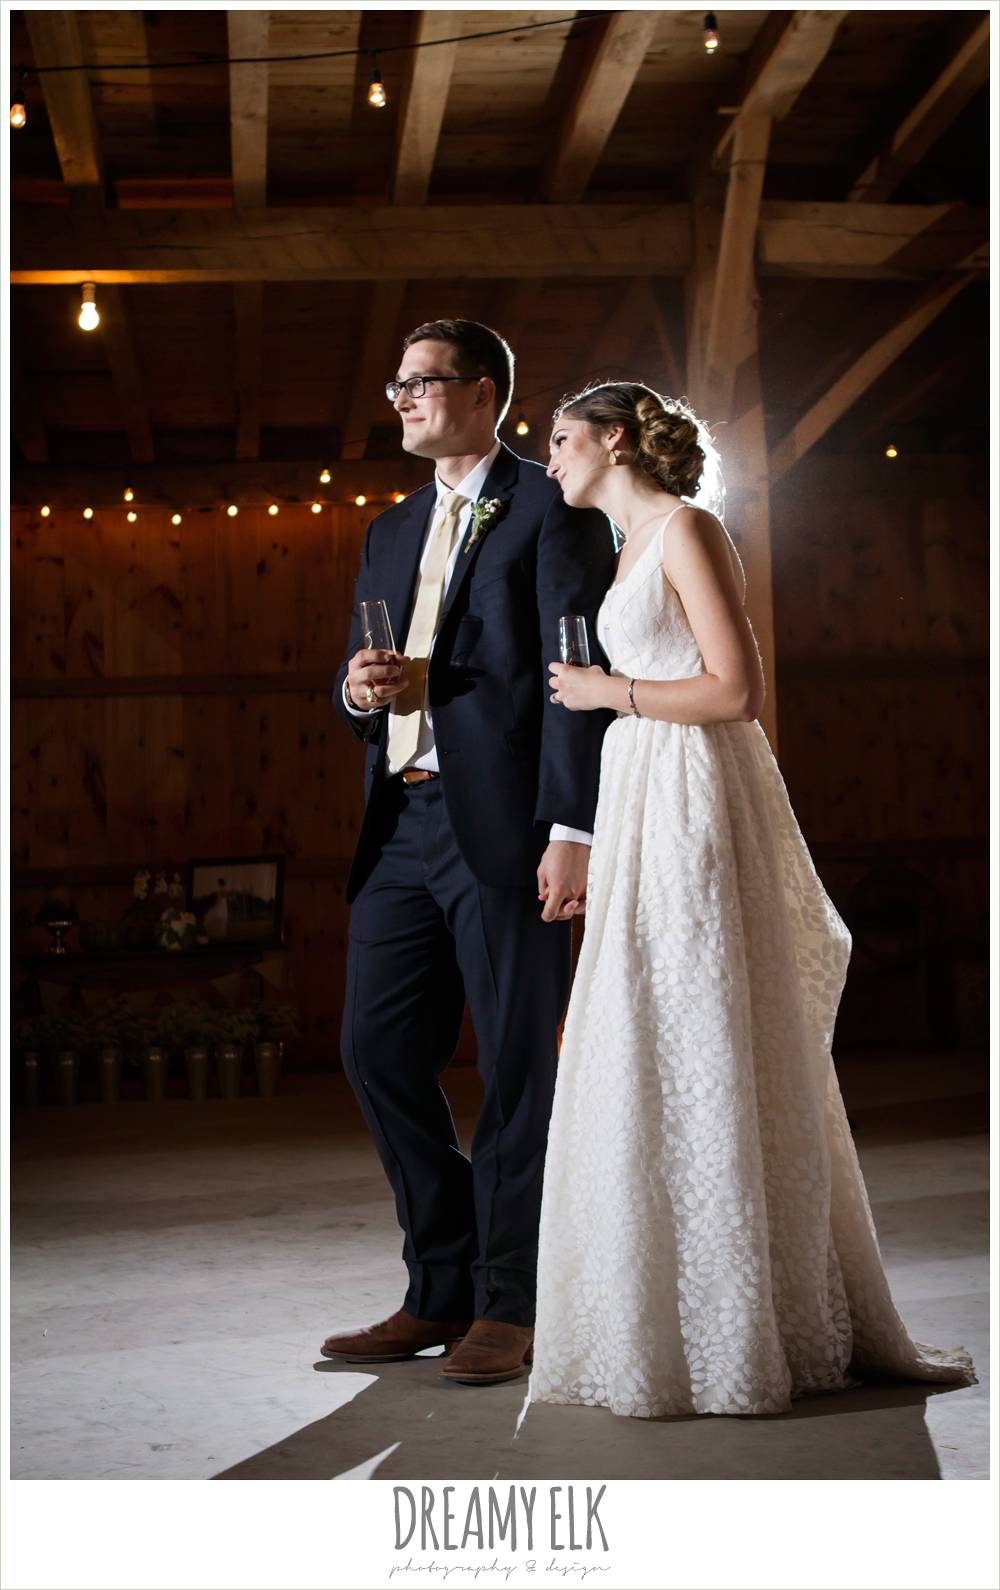 barn wedding reception, fall rustic chic wedding photo, the amish barn at edge {dreamy elk photography and design}